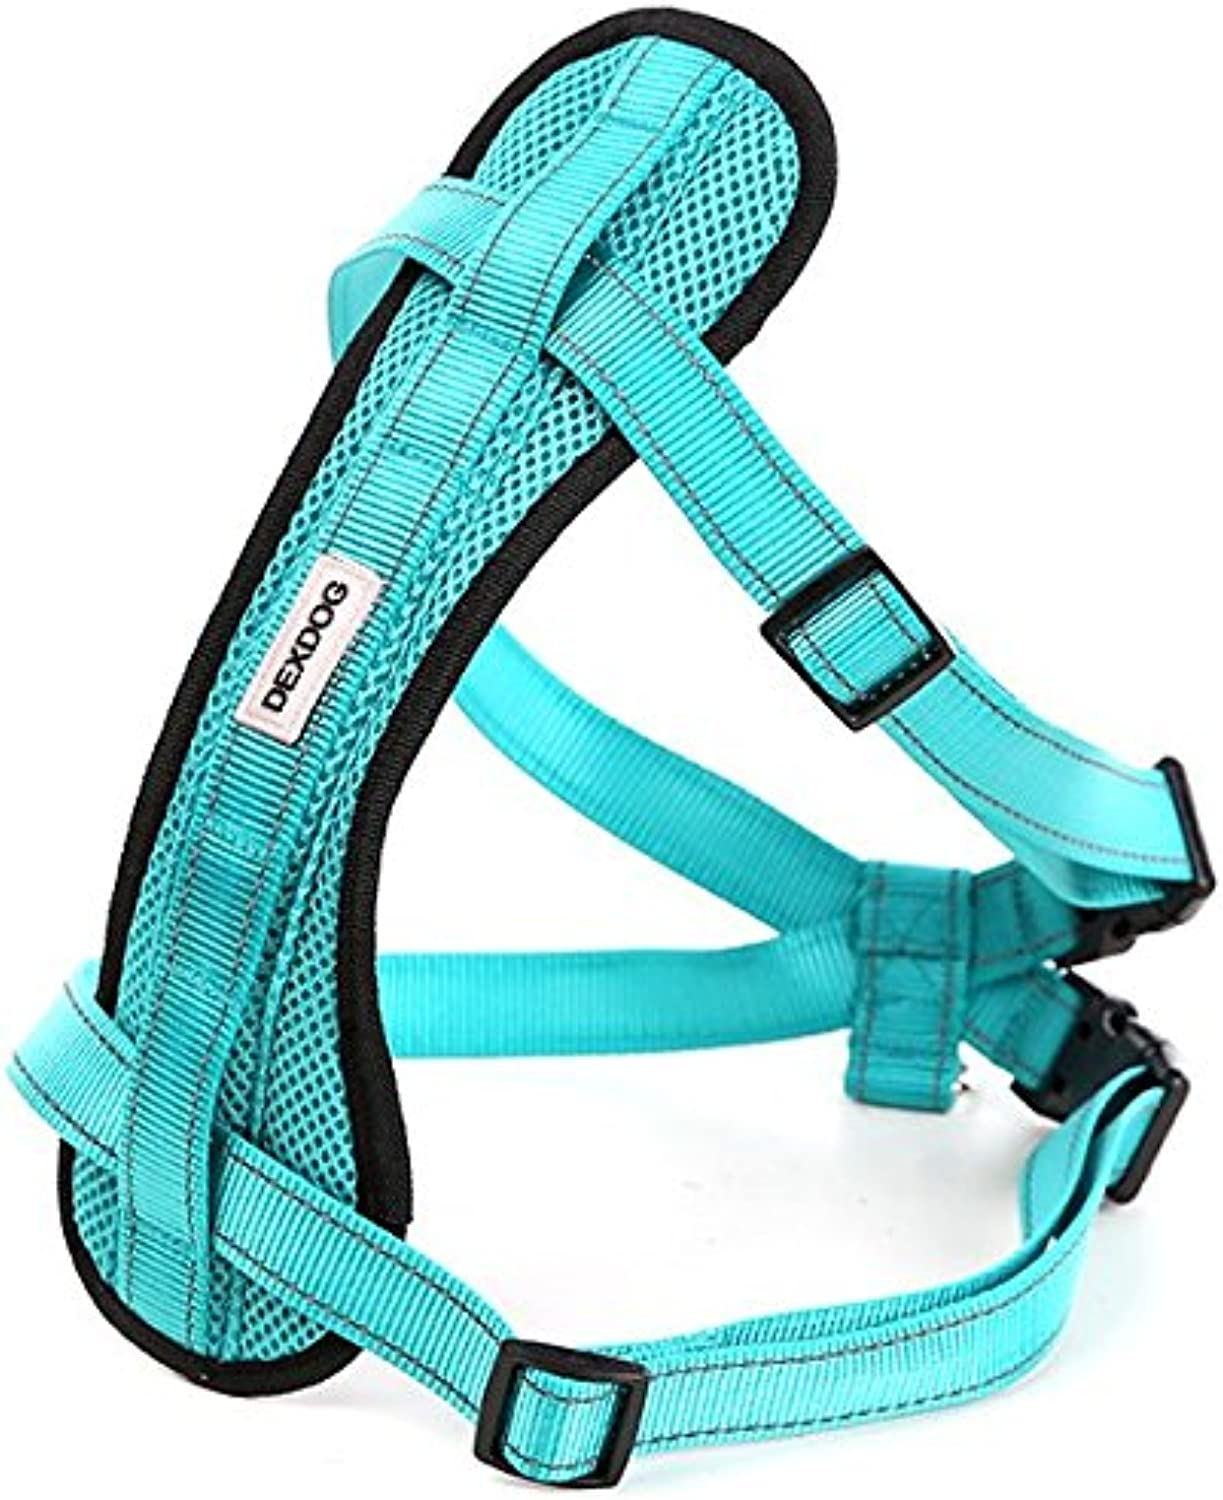 Chest Plate Harness by DEXDOG   Auto Car Safety Harness   Adjustable Straps, Reflective, Padded for Comfort   Best Dog Harness Small Large Dogs (Turquoise, Large)